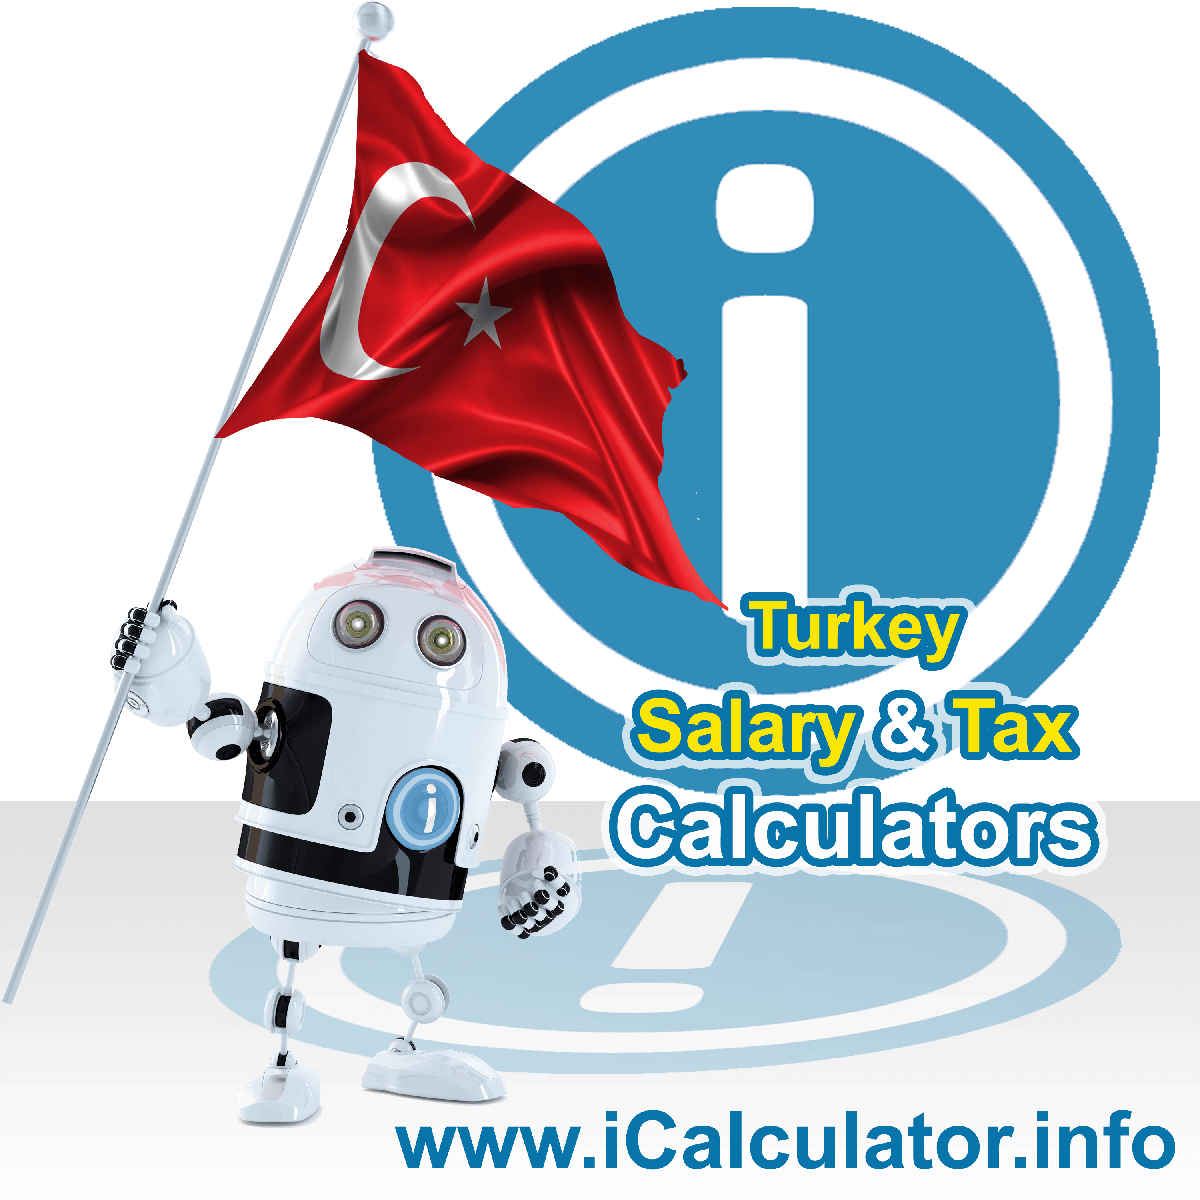 Turkey Tax Calculator. This image shows the Turkey flag and information relating to the tax formula for the Turkey Salary Calculator